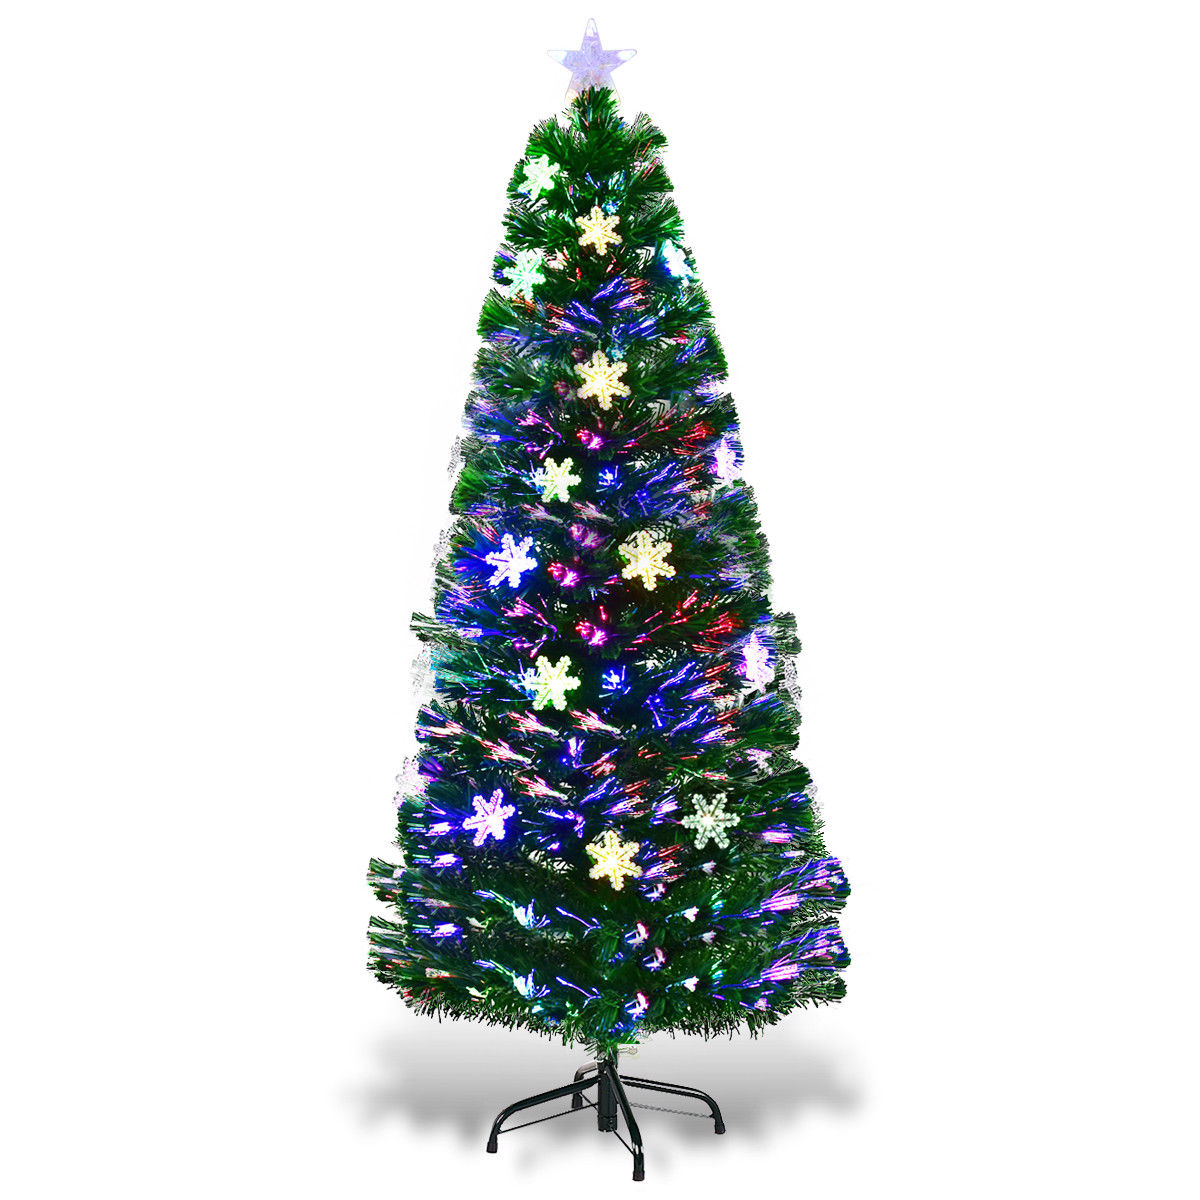 Costway 6FT Pre-Lit Fiber Optic Artificial Christmas Tree w/Multicolor Lights Snowflakes